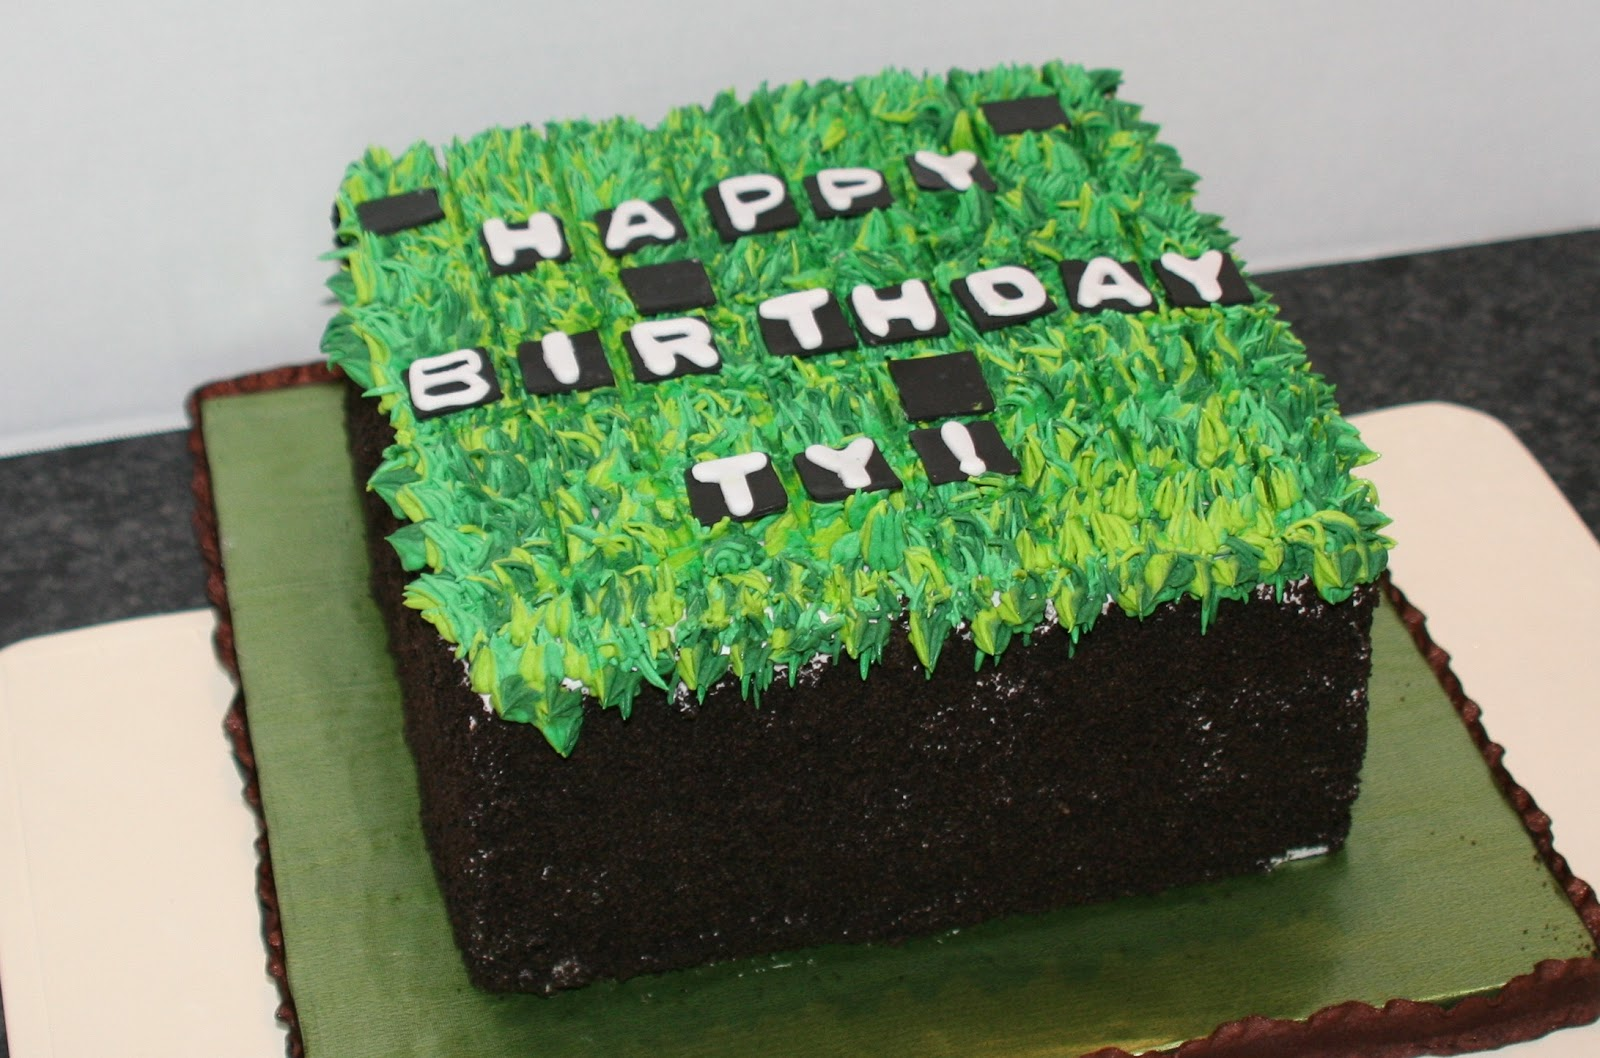 Edge Desserts Minecraft Cake Its Easier than you might think